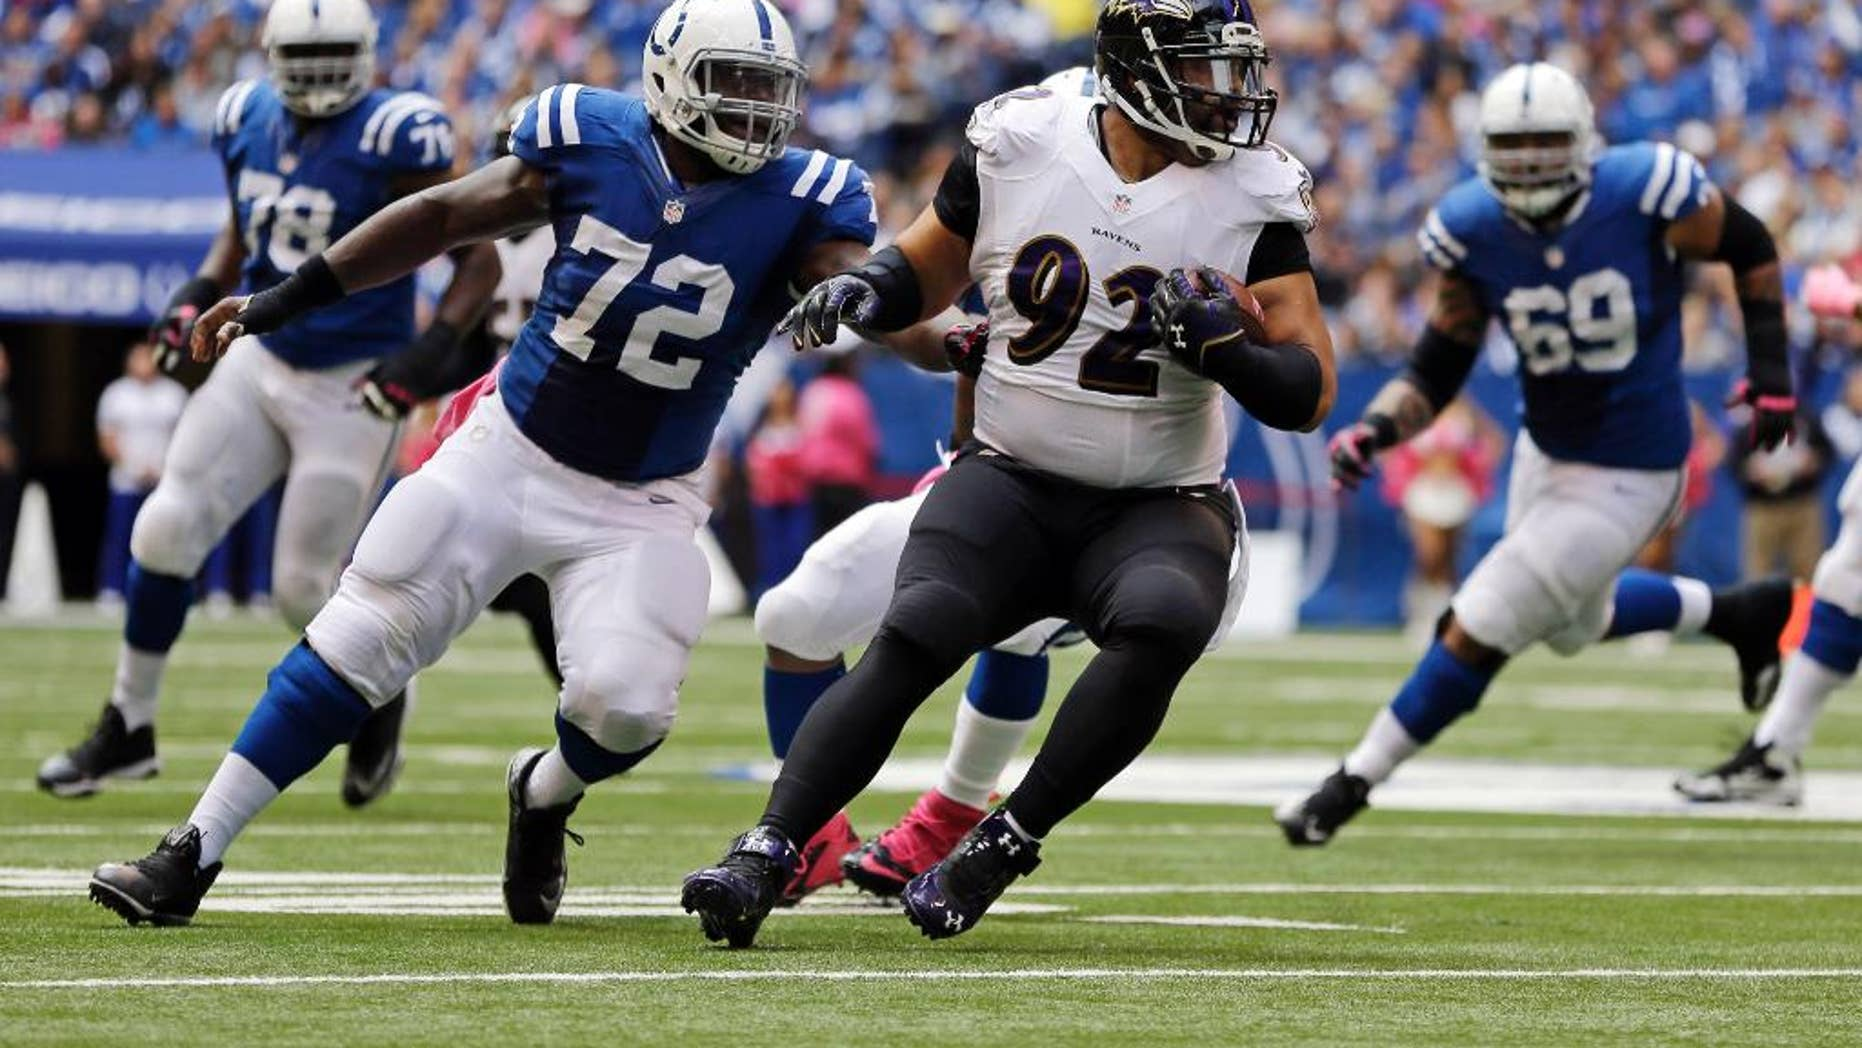 FILE - In this Oct. 5, 2014, file photo, Baltimore Ravens nose tackle Haloti Ngata (92)  is chased by Indianapolis Colts center Jonotthan Harrison (72) after intercepting a pass during the first half of an NFL football game in Indianapolis. There is seemingly no limit to the ways in which Ngata can help the Ravens win. He stops the run, intercepts passes, has served as a blocking back and last Sunday took over as the long snapper for injured Morgan Cox. (AP Photo/Jeff Roberson, File)